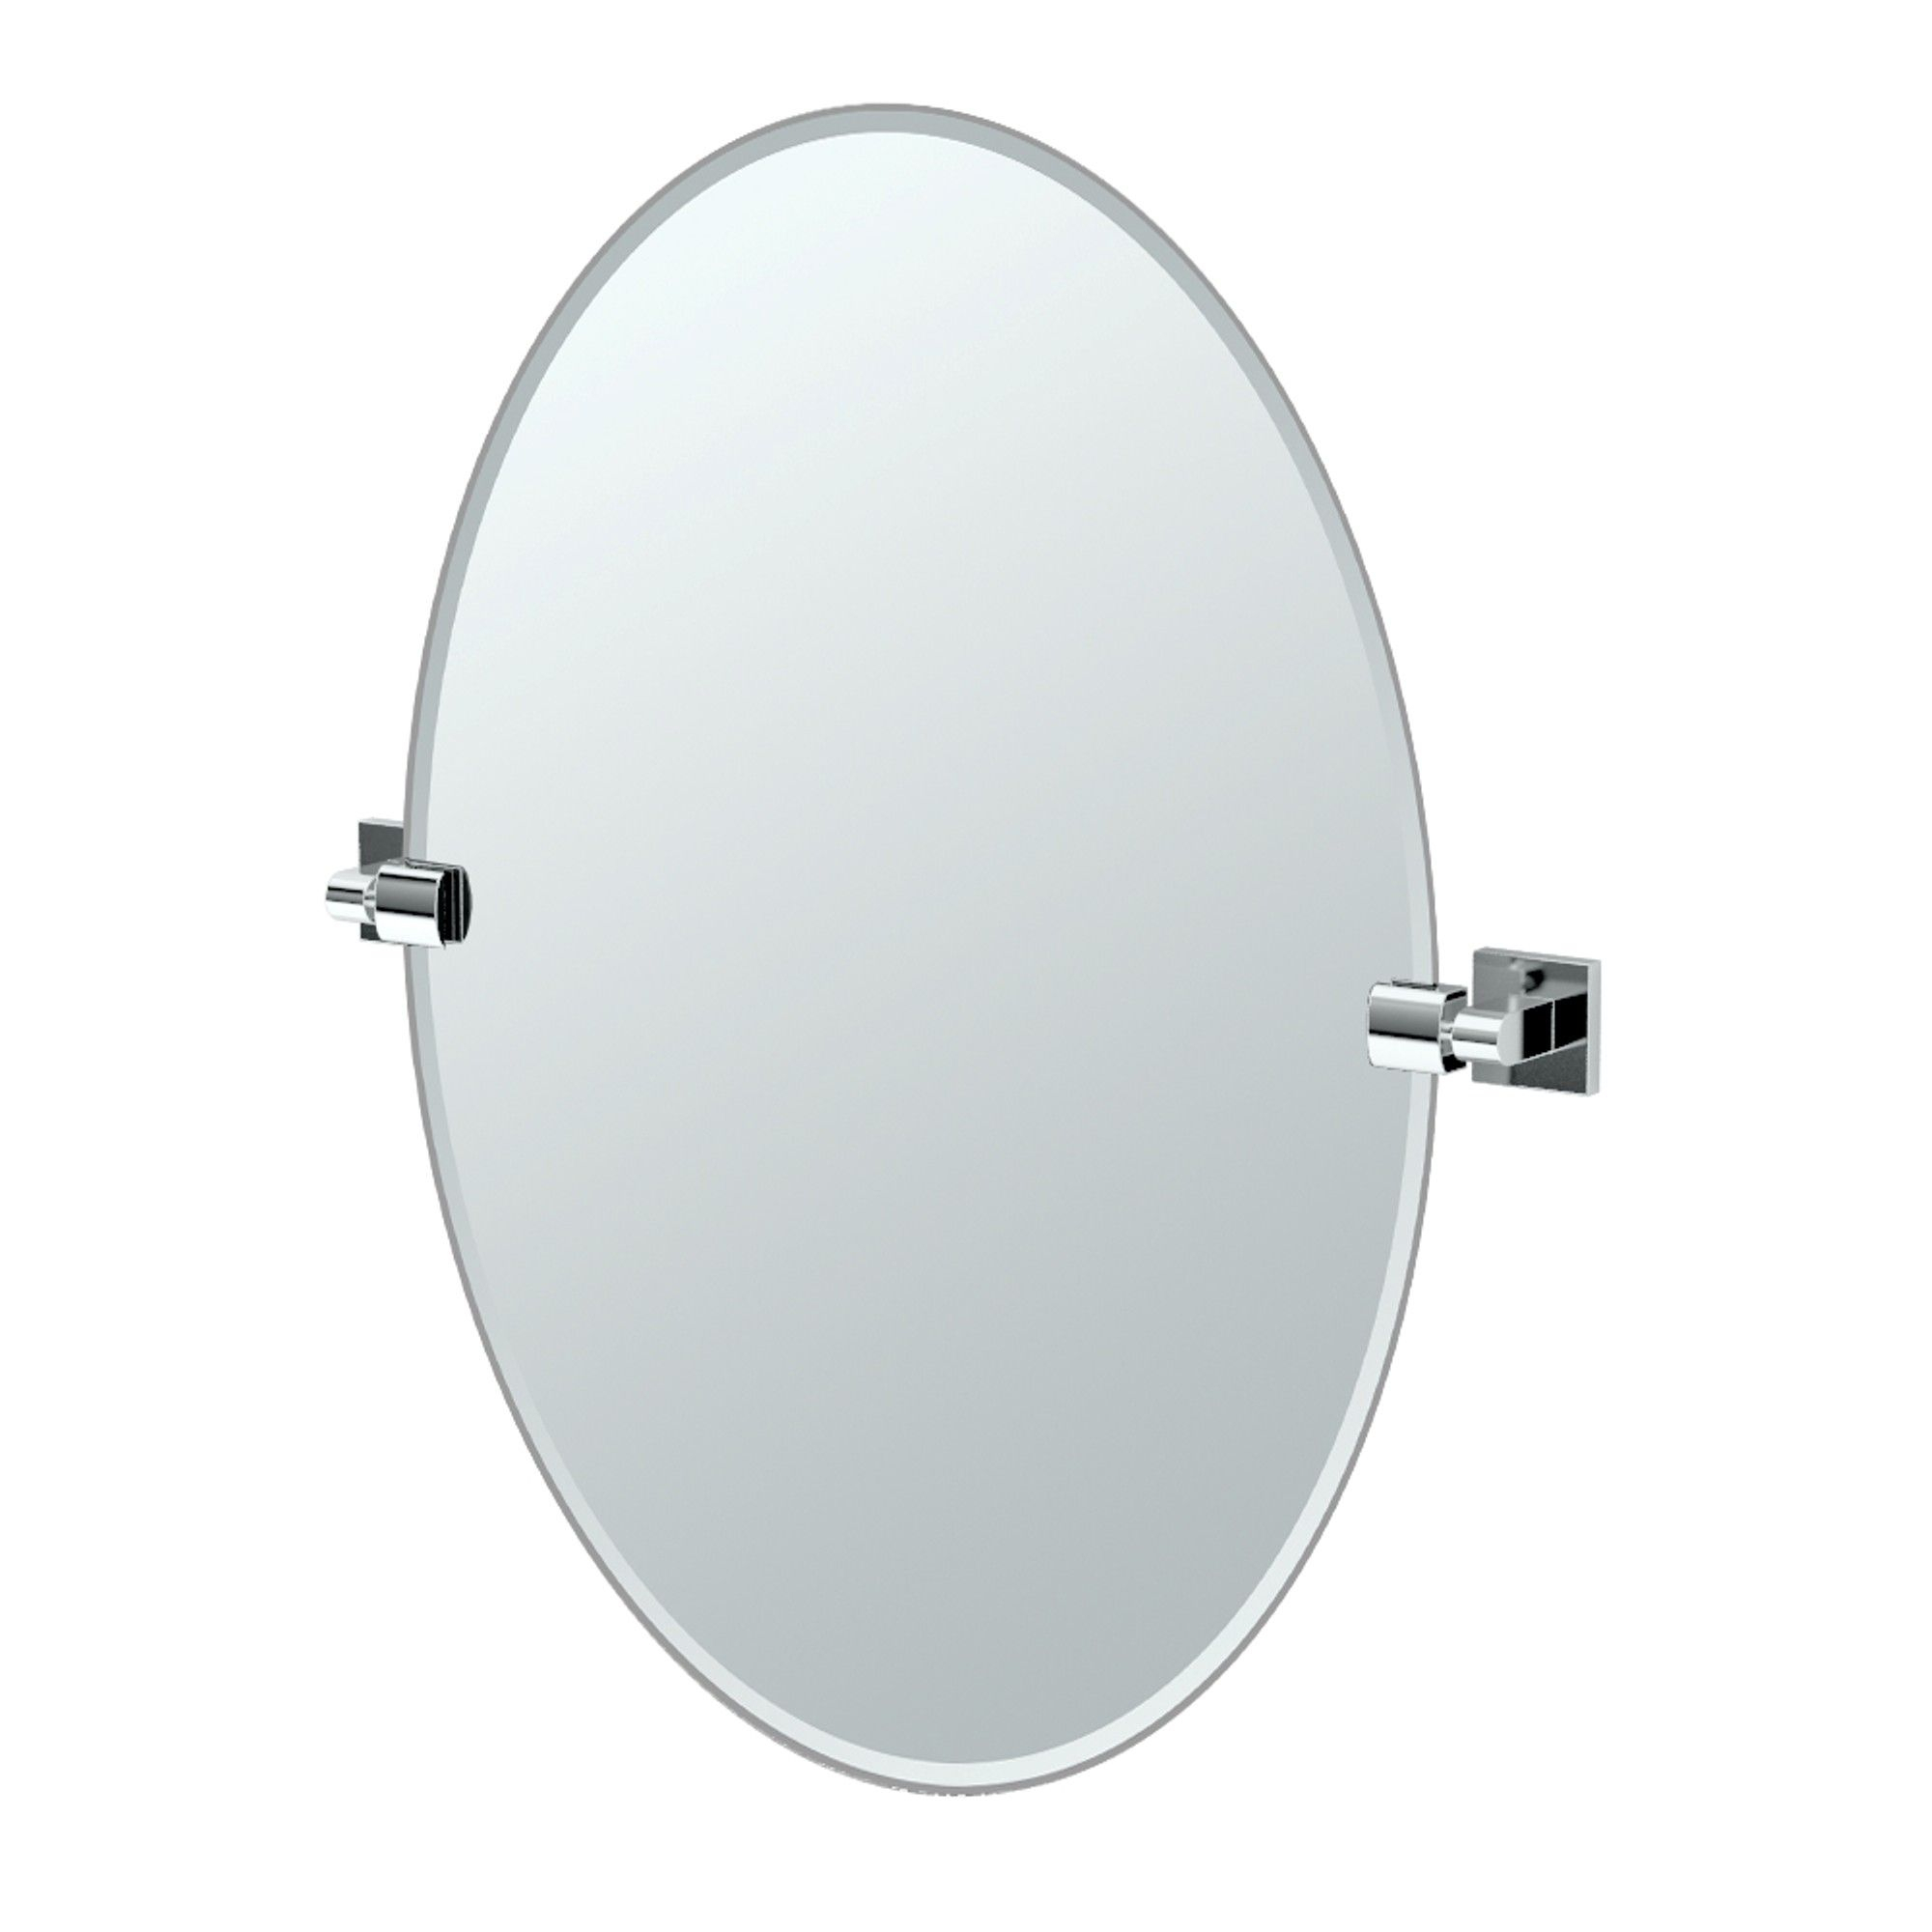 Elevate Wall Mirror | 1601 Cowhorn | Wall Mounted Mirror Throughout Elevate Wall Mirrors (Image 4 of 20)